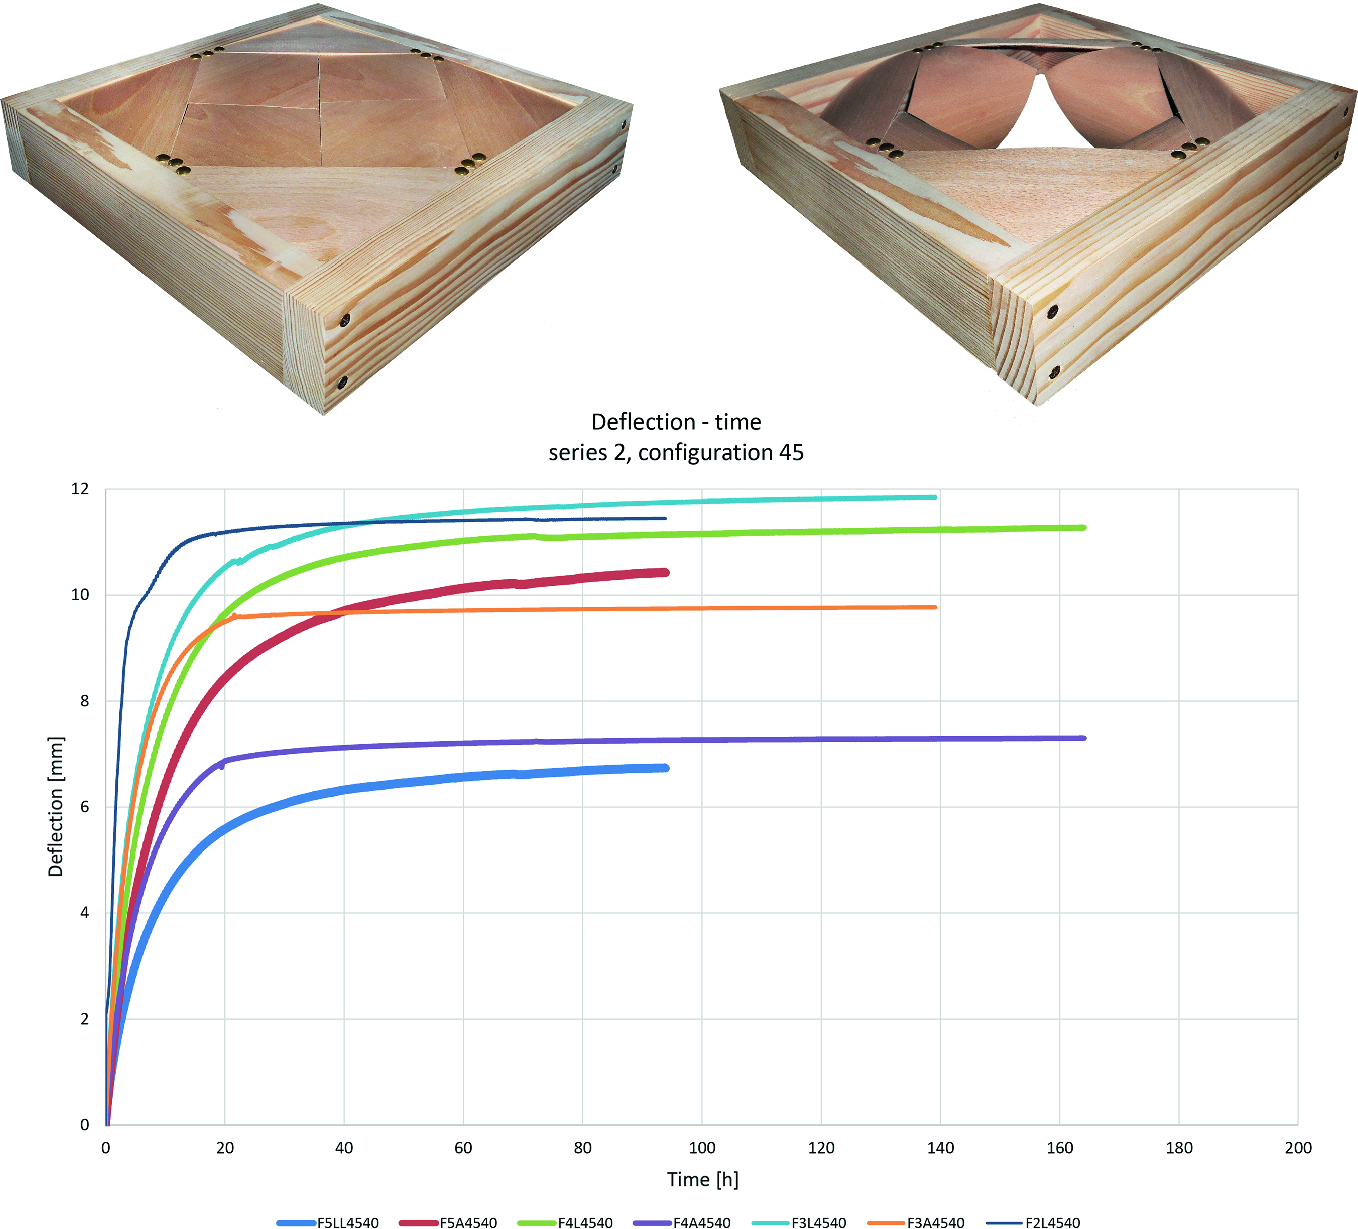 WOOD, CAD AND AI: Digital Modelling as Place of Convergence